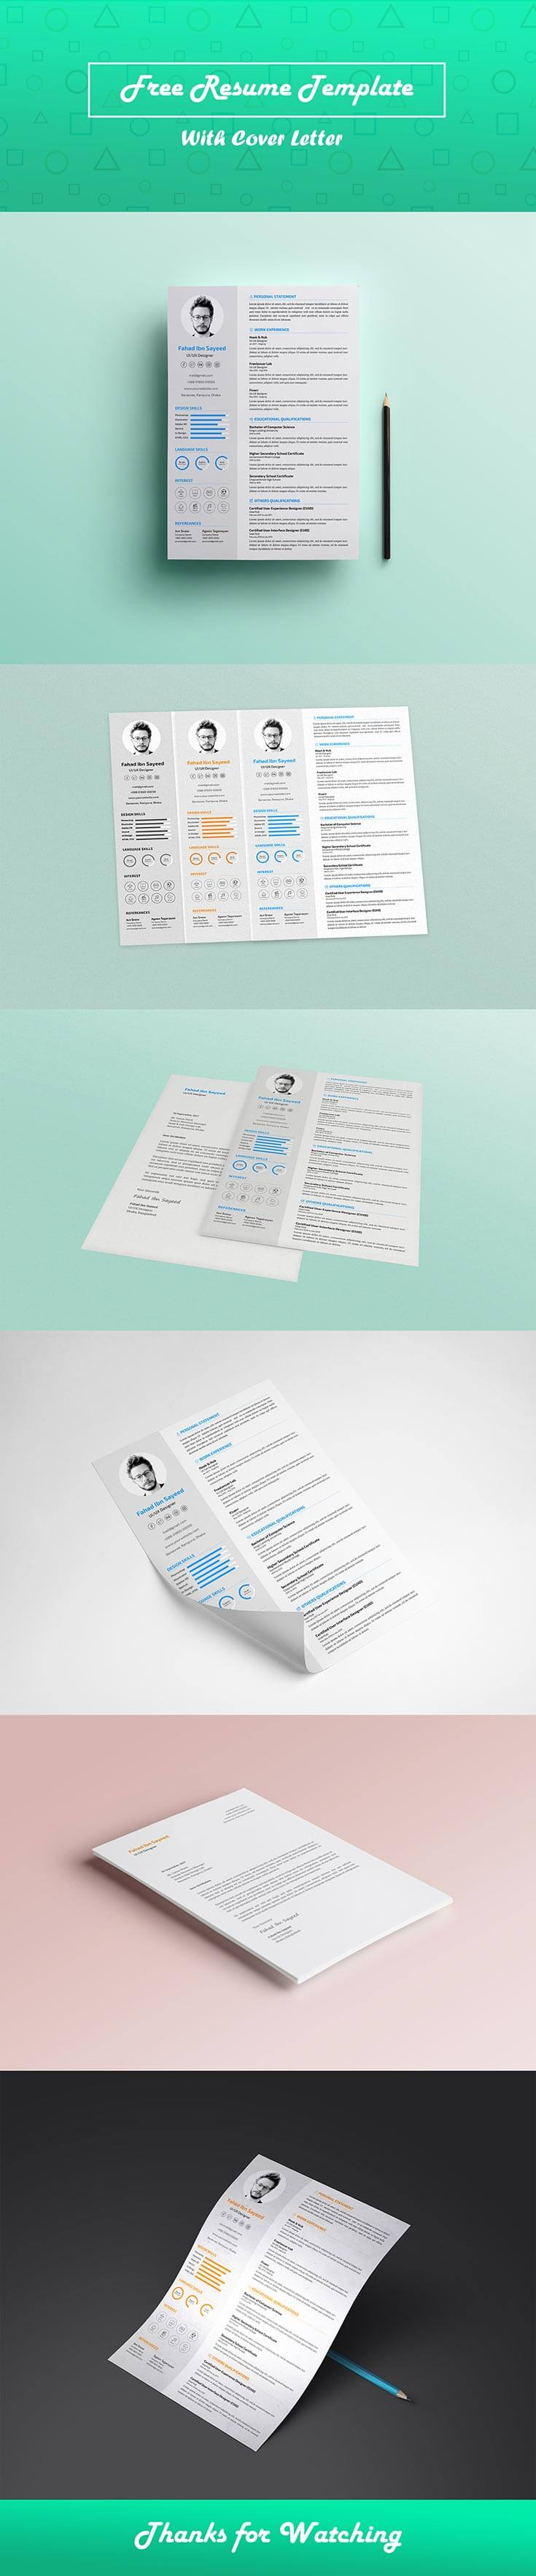 #Free CV #Resume PSD #Template is an attractive quality CV/resume template. The template also comes with a cover letter to give it a more professional look.